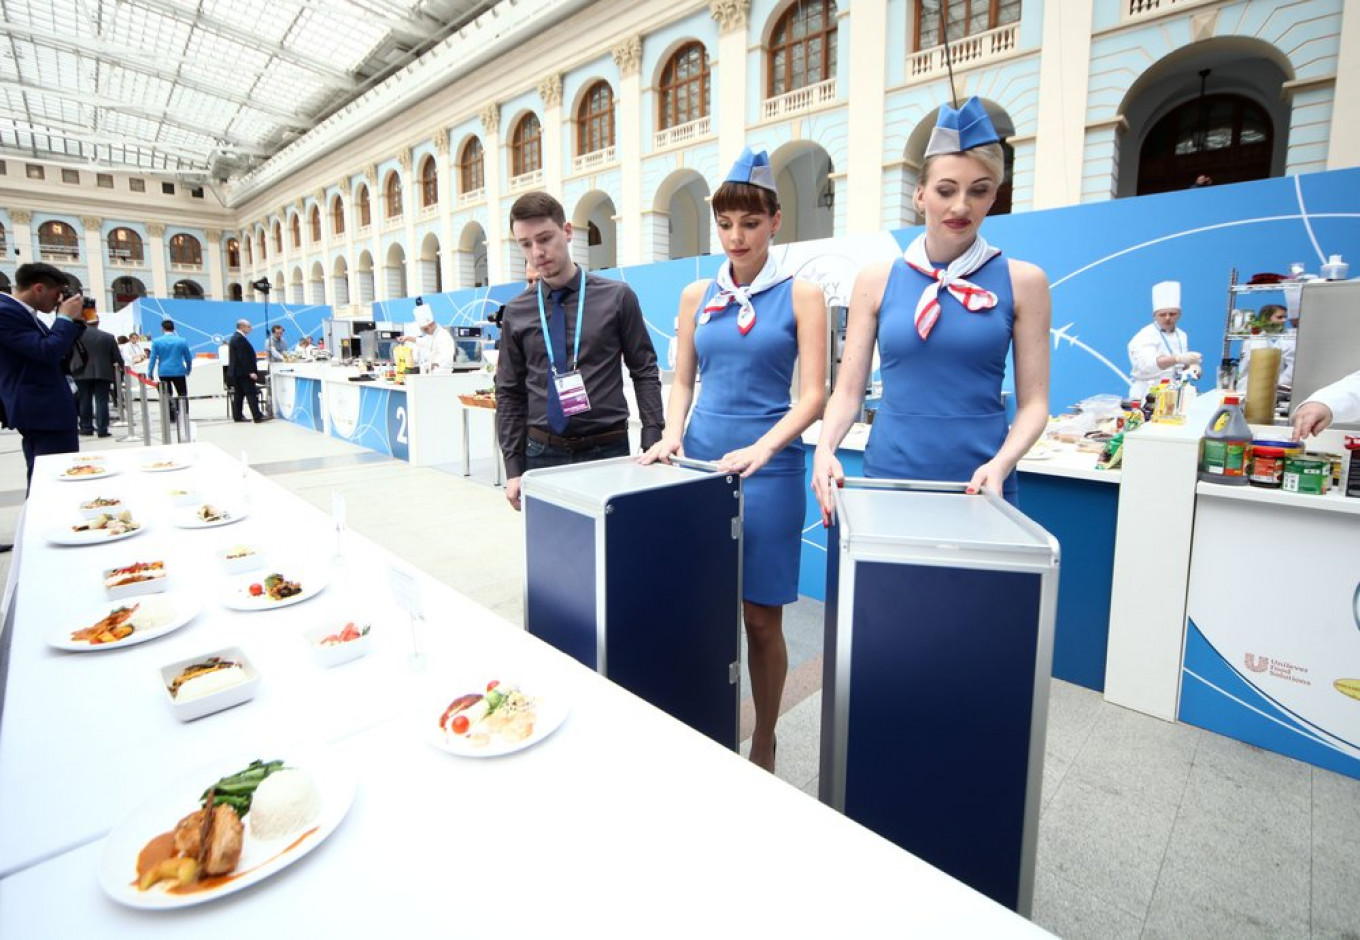 Russian airline catering company Aeromar organizes the event every year. Sergei Vedyashkin / Moskva News Agency